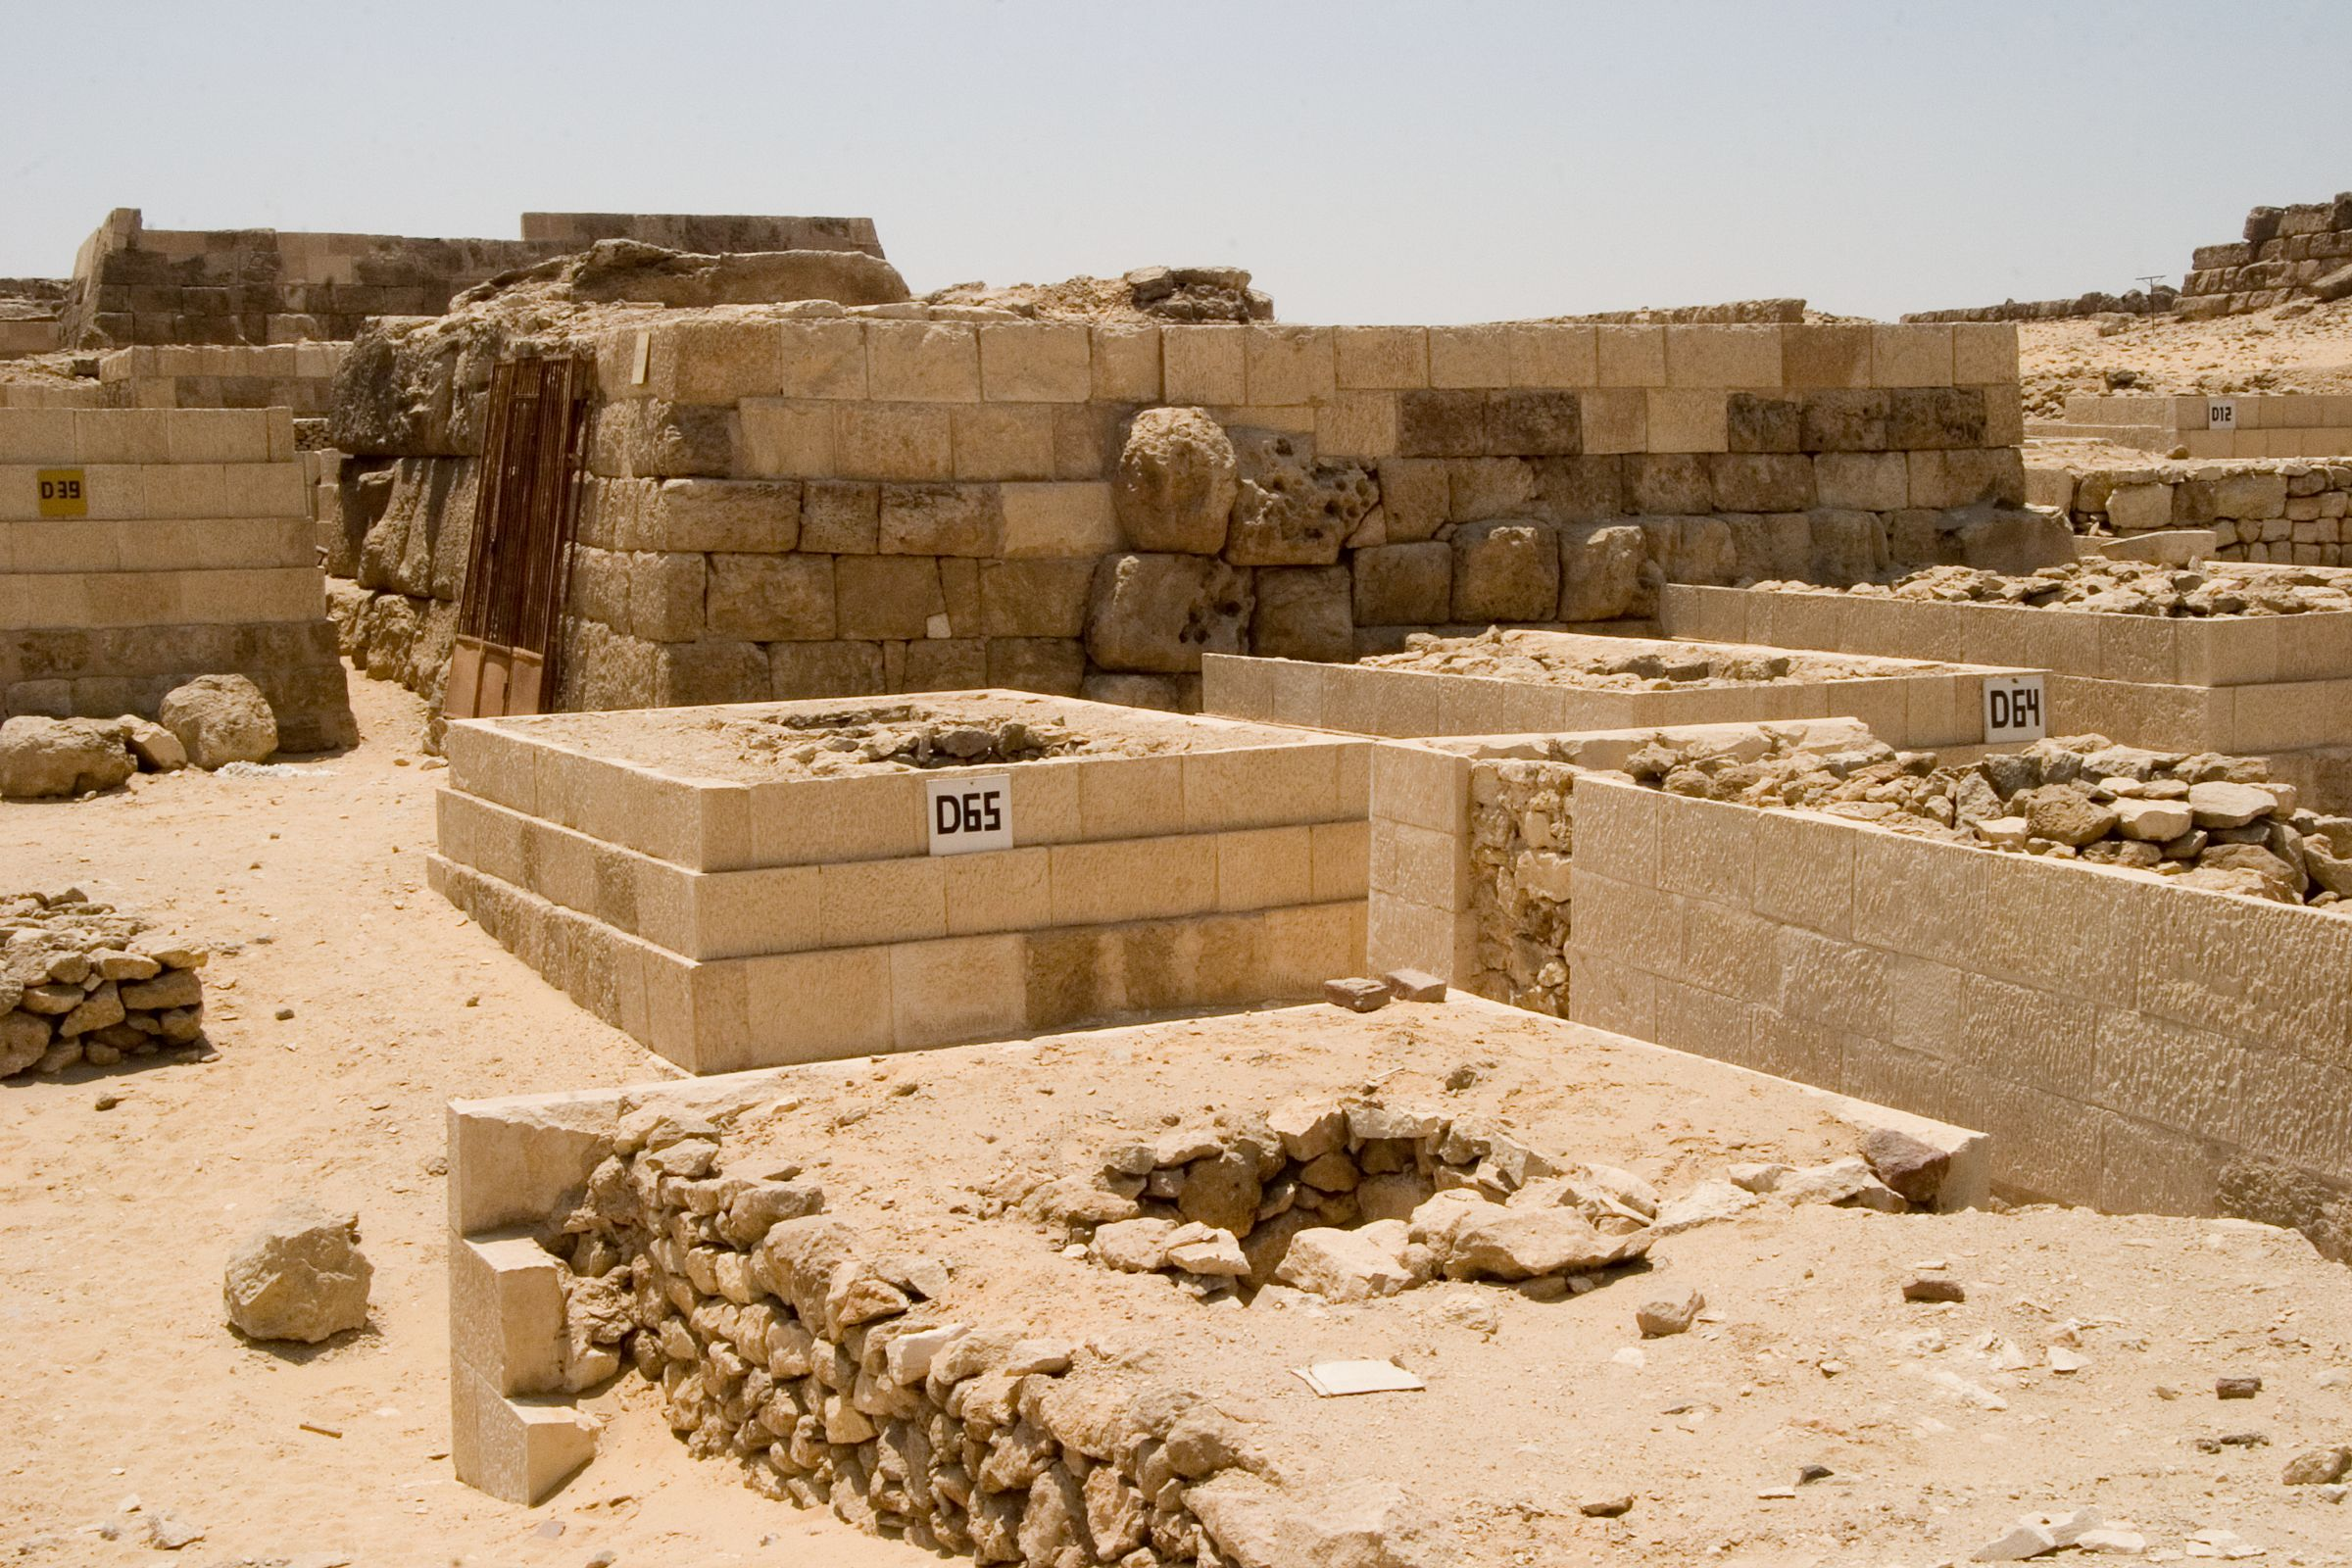 Western Cemetery: Site: Giza; View: D 65